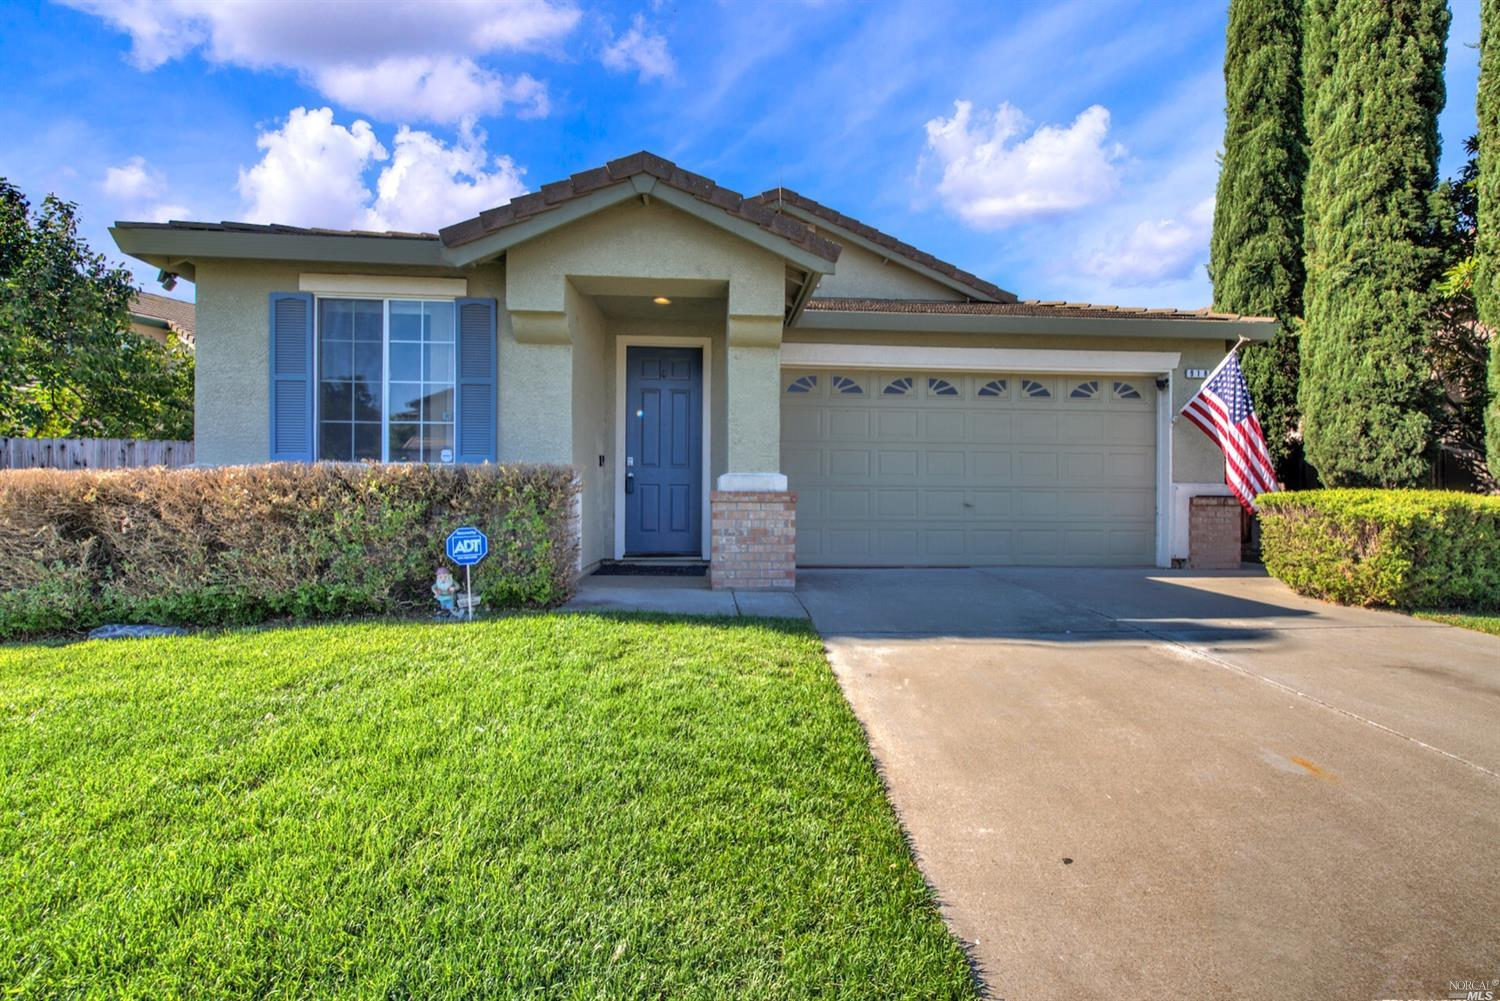 Wonderful single story with lots of privacy and and great neighborhood! This property has 3 bedrooms